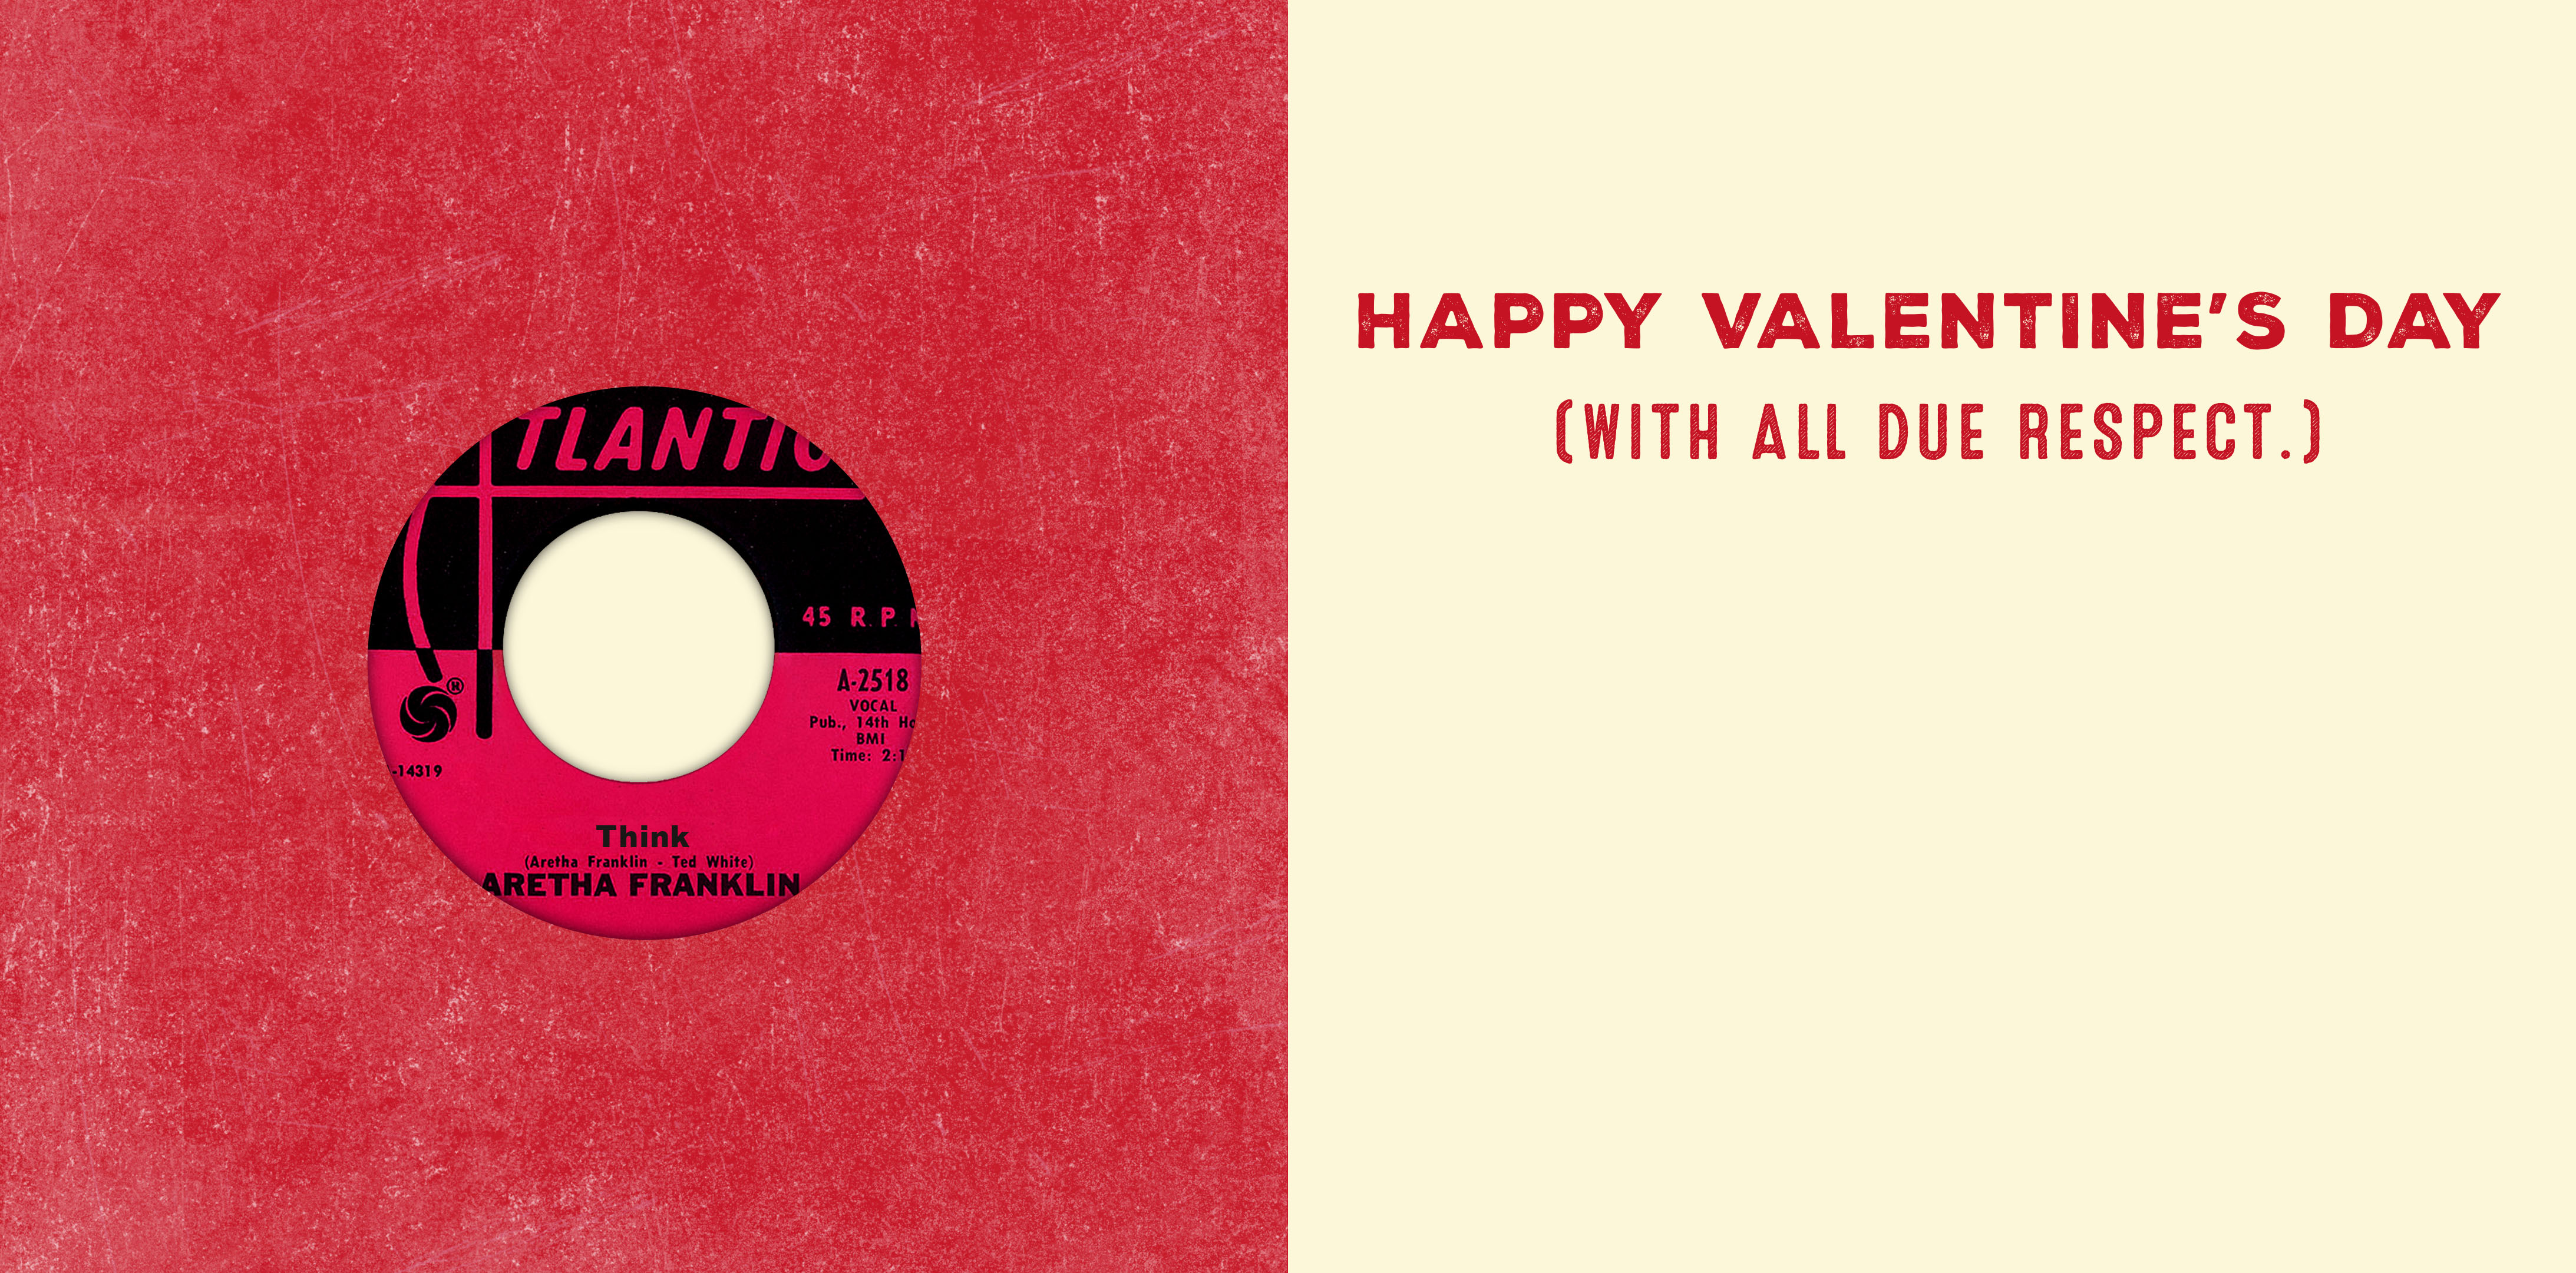 Respect Valentine's Day Card with Vinyl Record – Inside